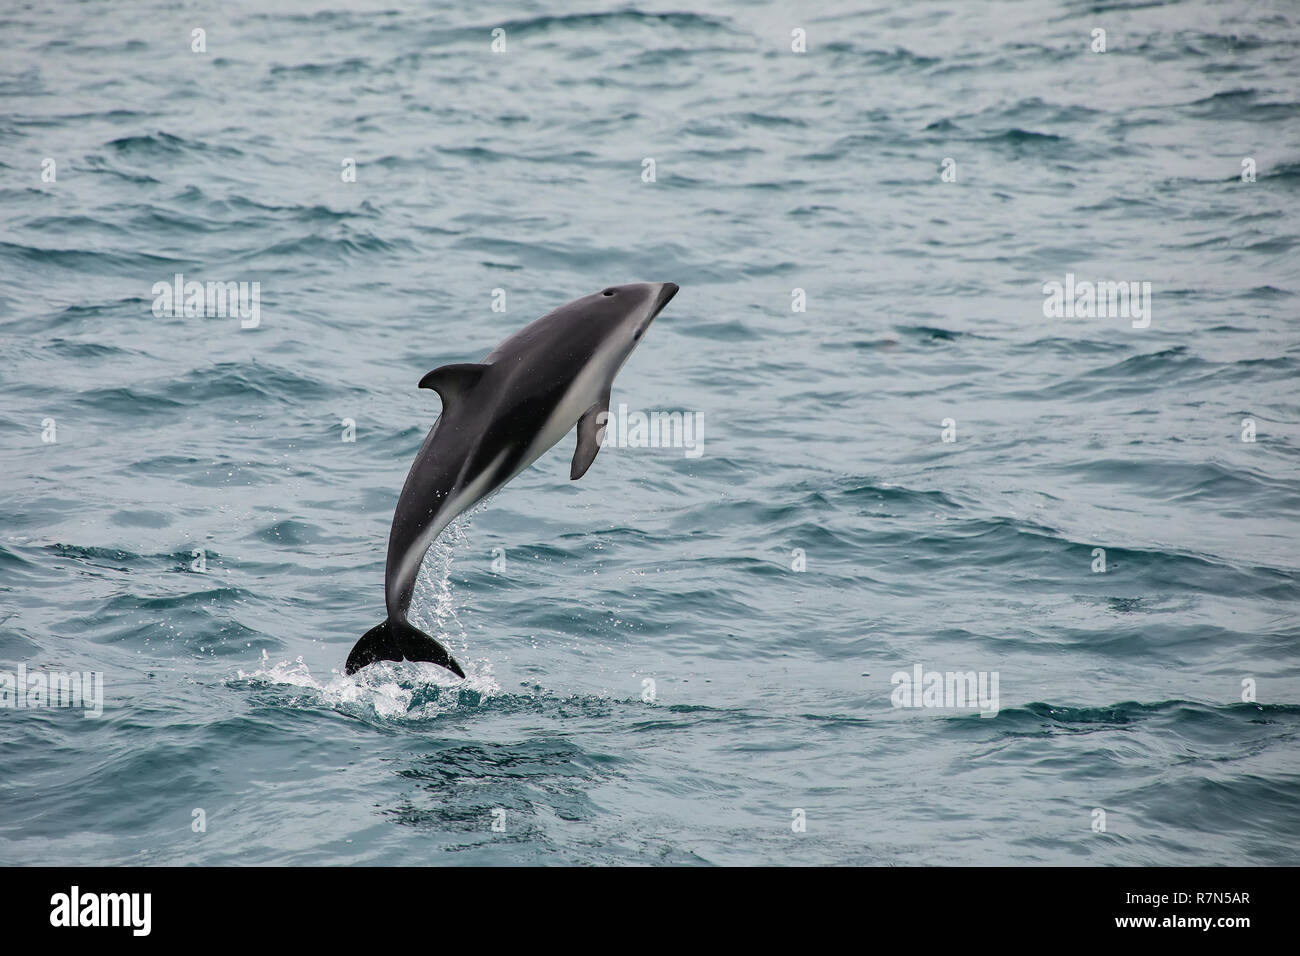 Dusky dolphin leaing out of the water near Kaikoura, New Zealand. Kaikoura is a popular tourist destination for watching and swimming with dolphins. - Stock Image